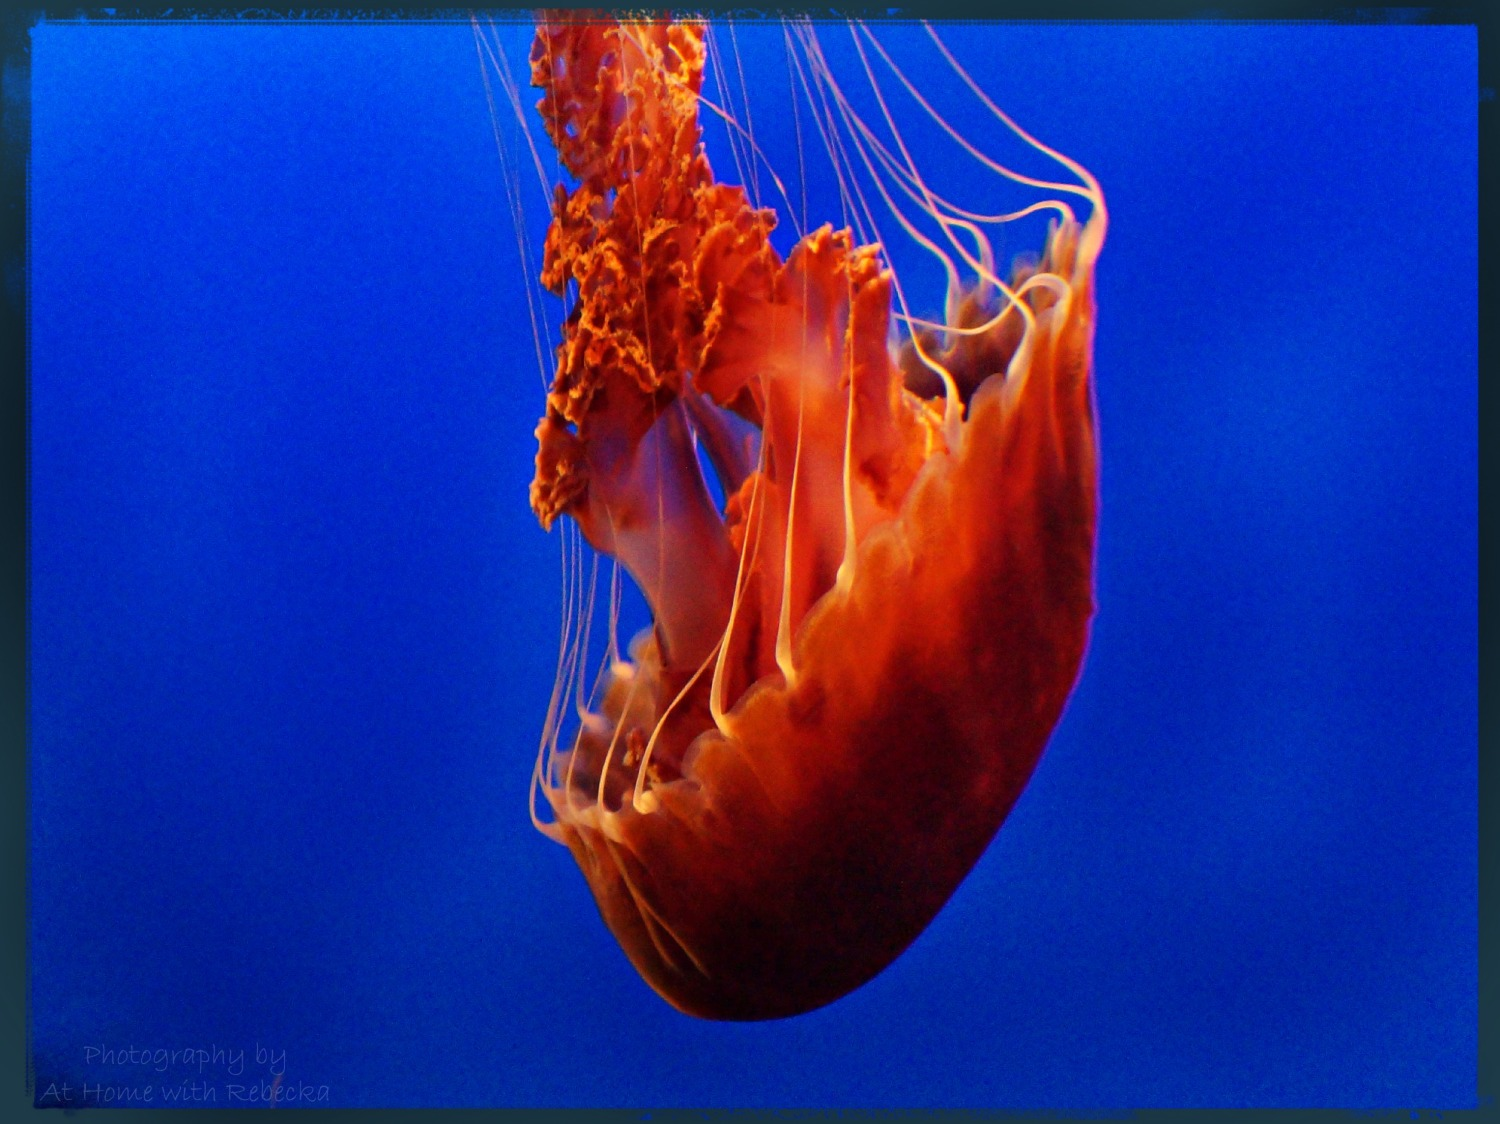 Indonesian Flame Jelly